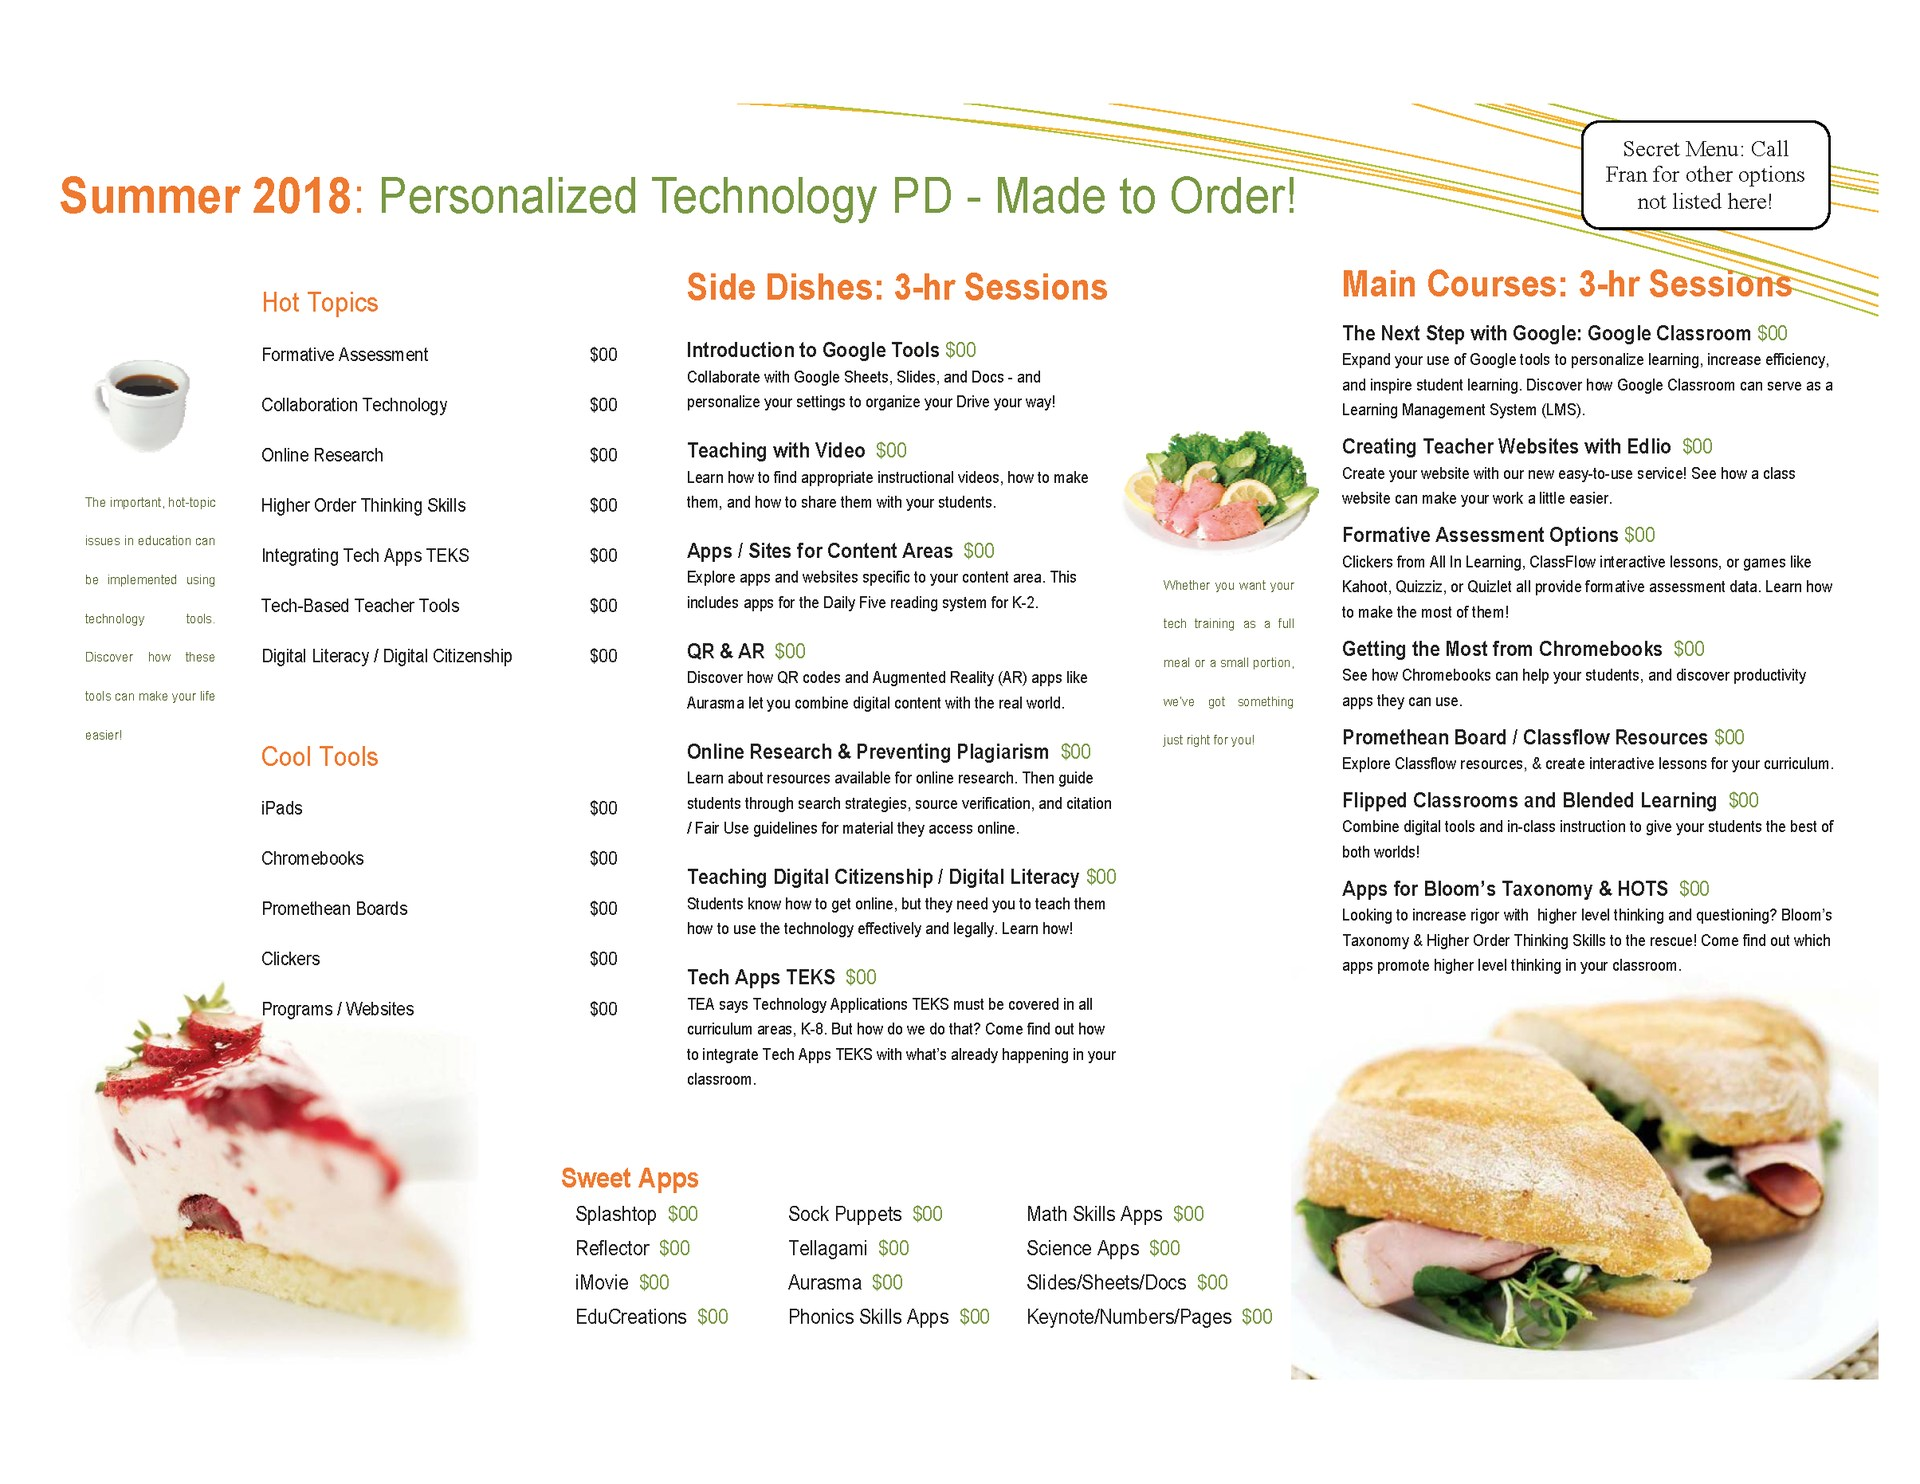 menu of PD sessions offered